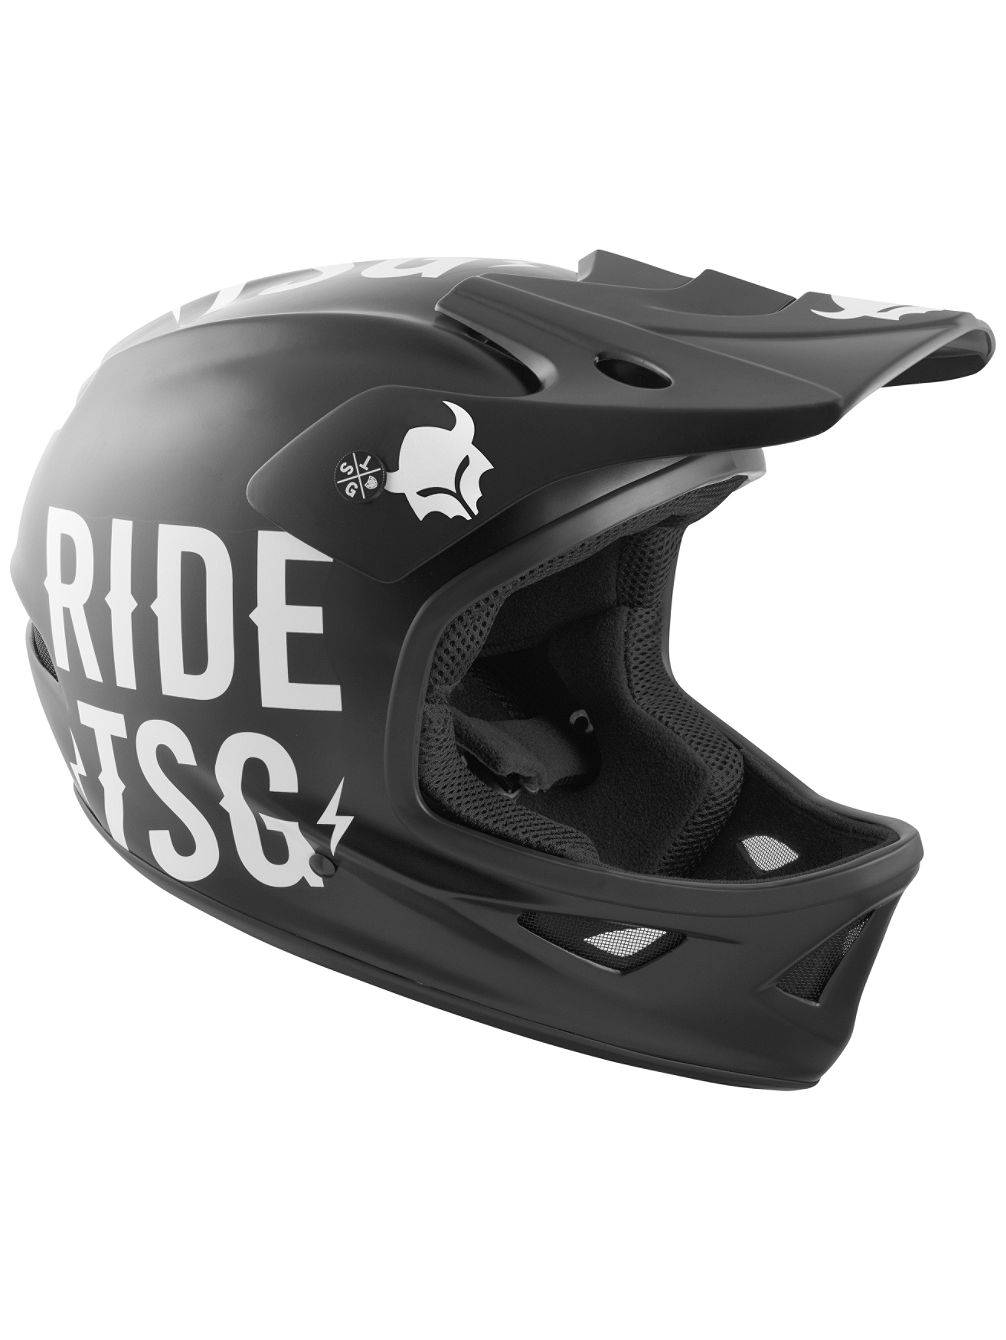 Squad Graphic Design Helmet